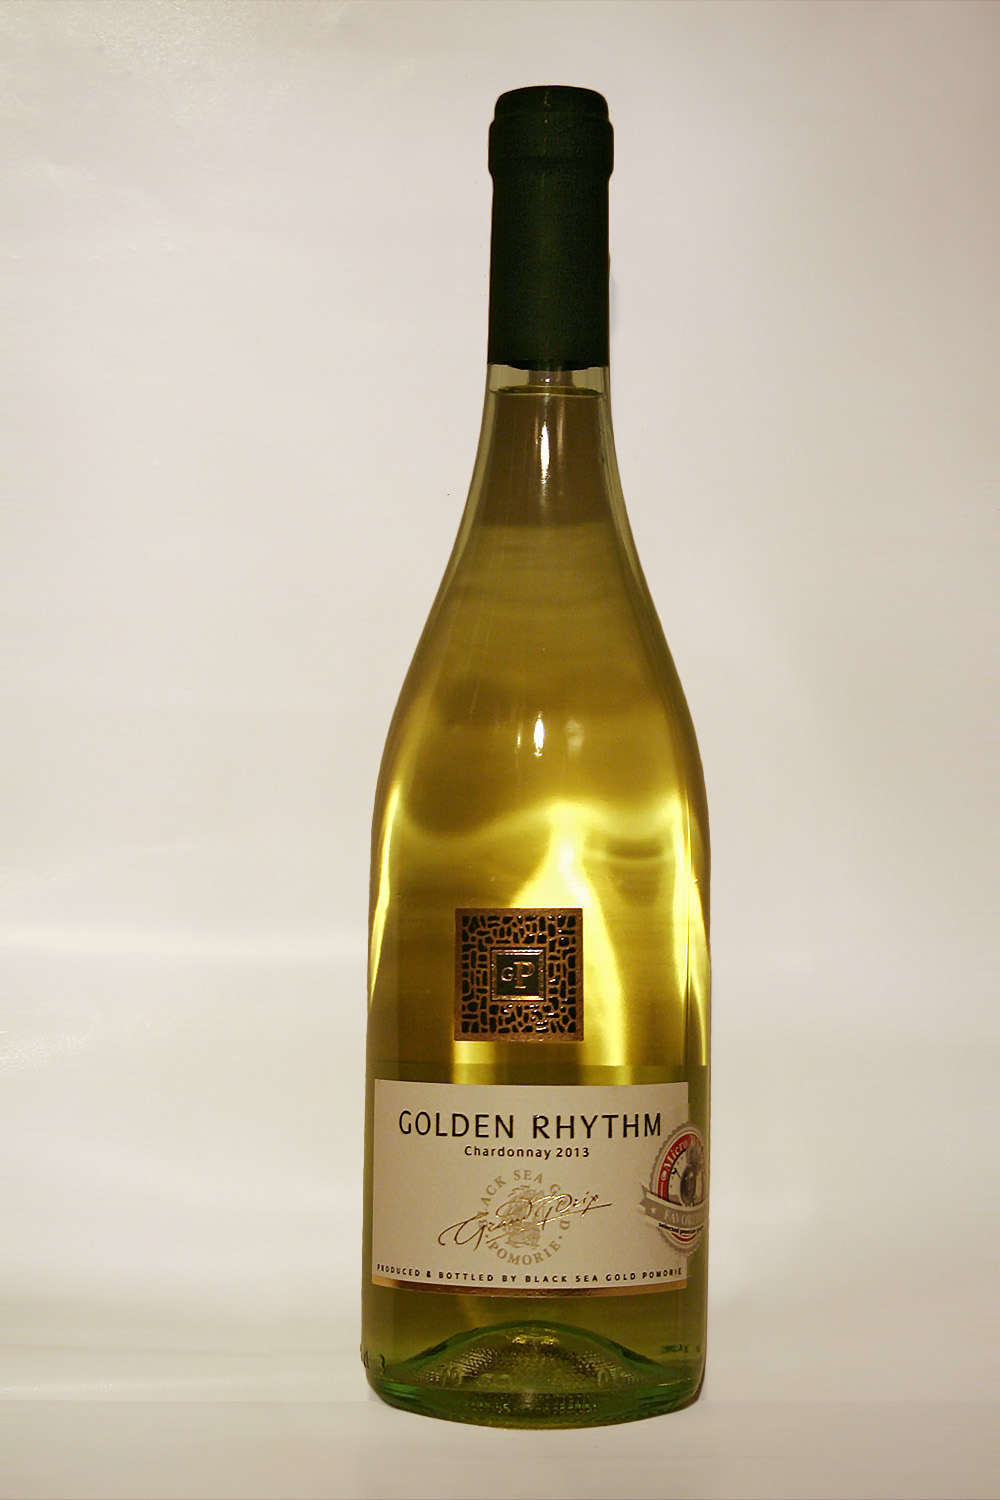 GP Golden Rhythm Chardonnay 2013